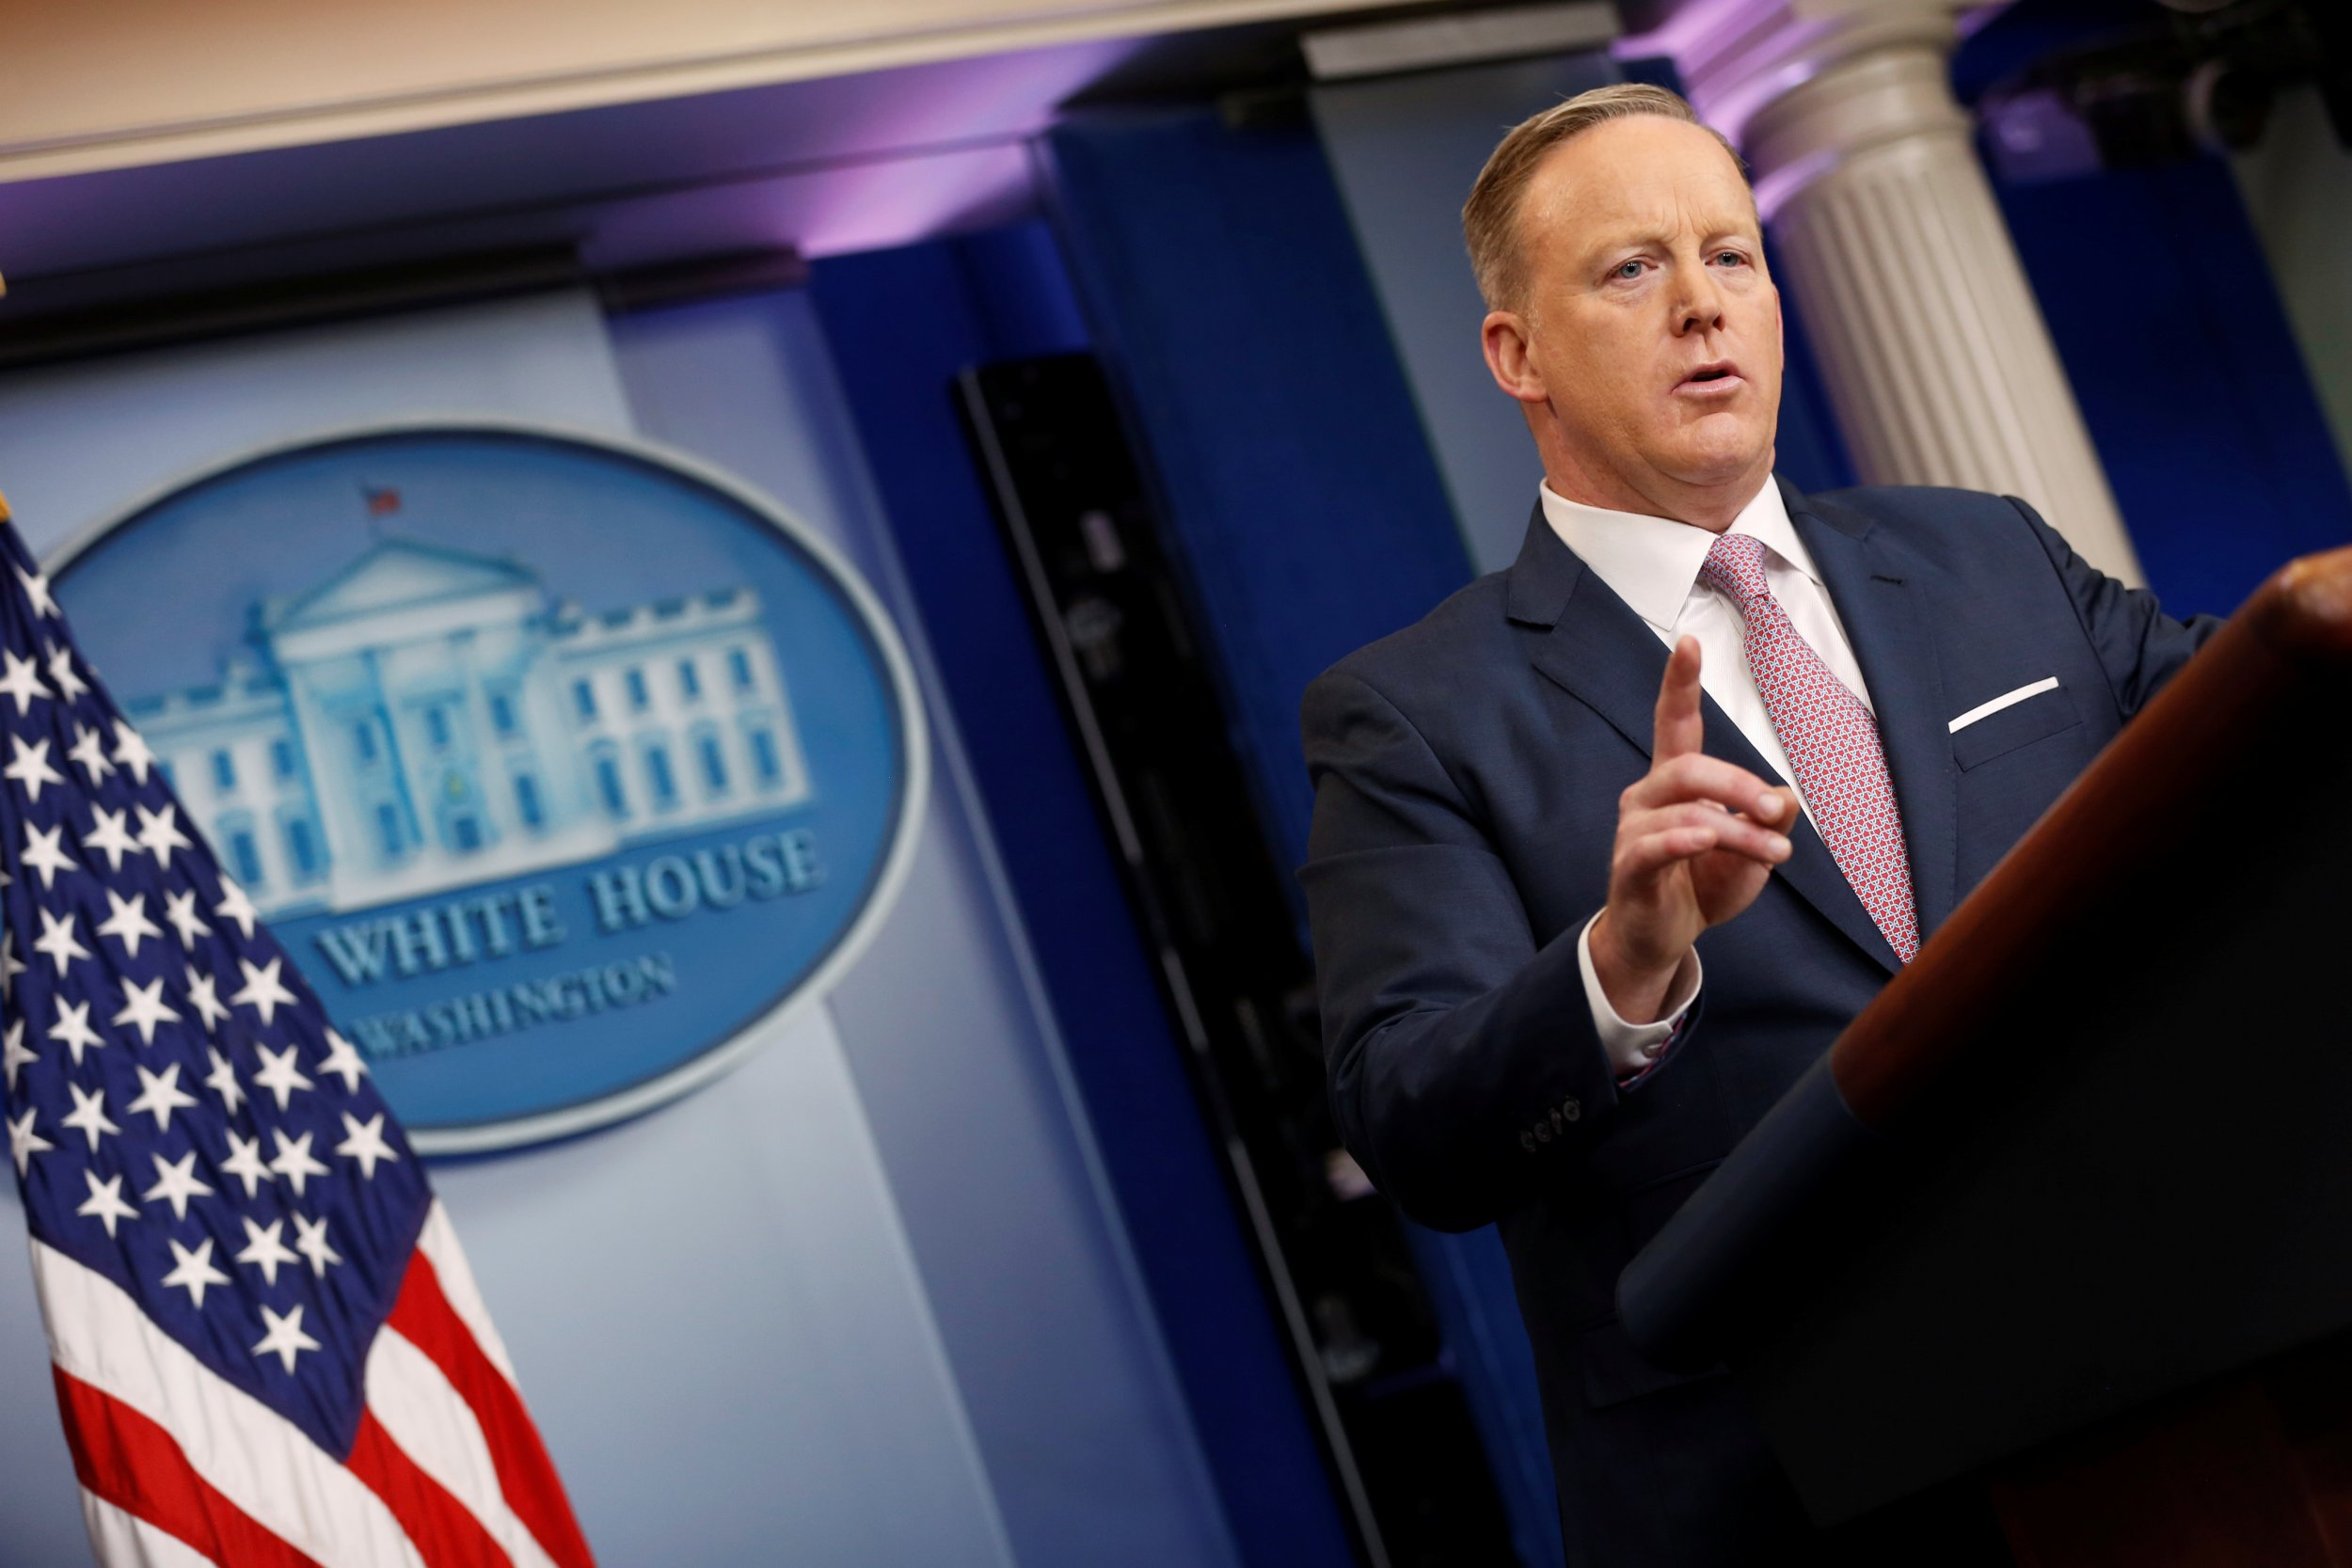 Sean Spicer resignation shows White House staff no longer loyal to Trump